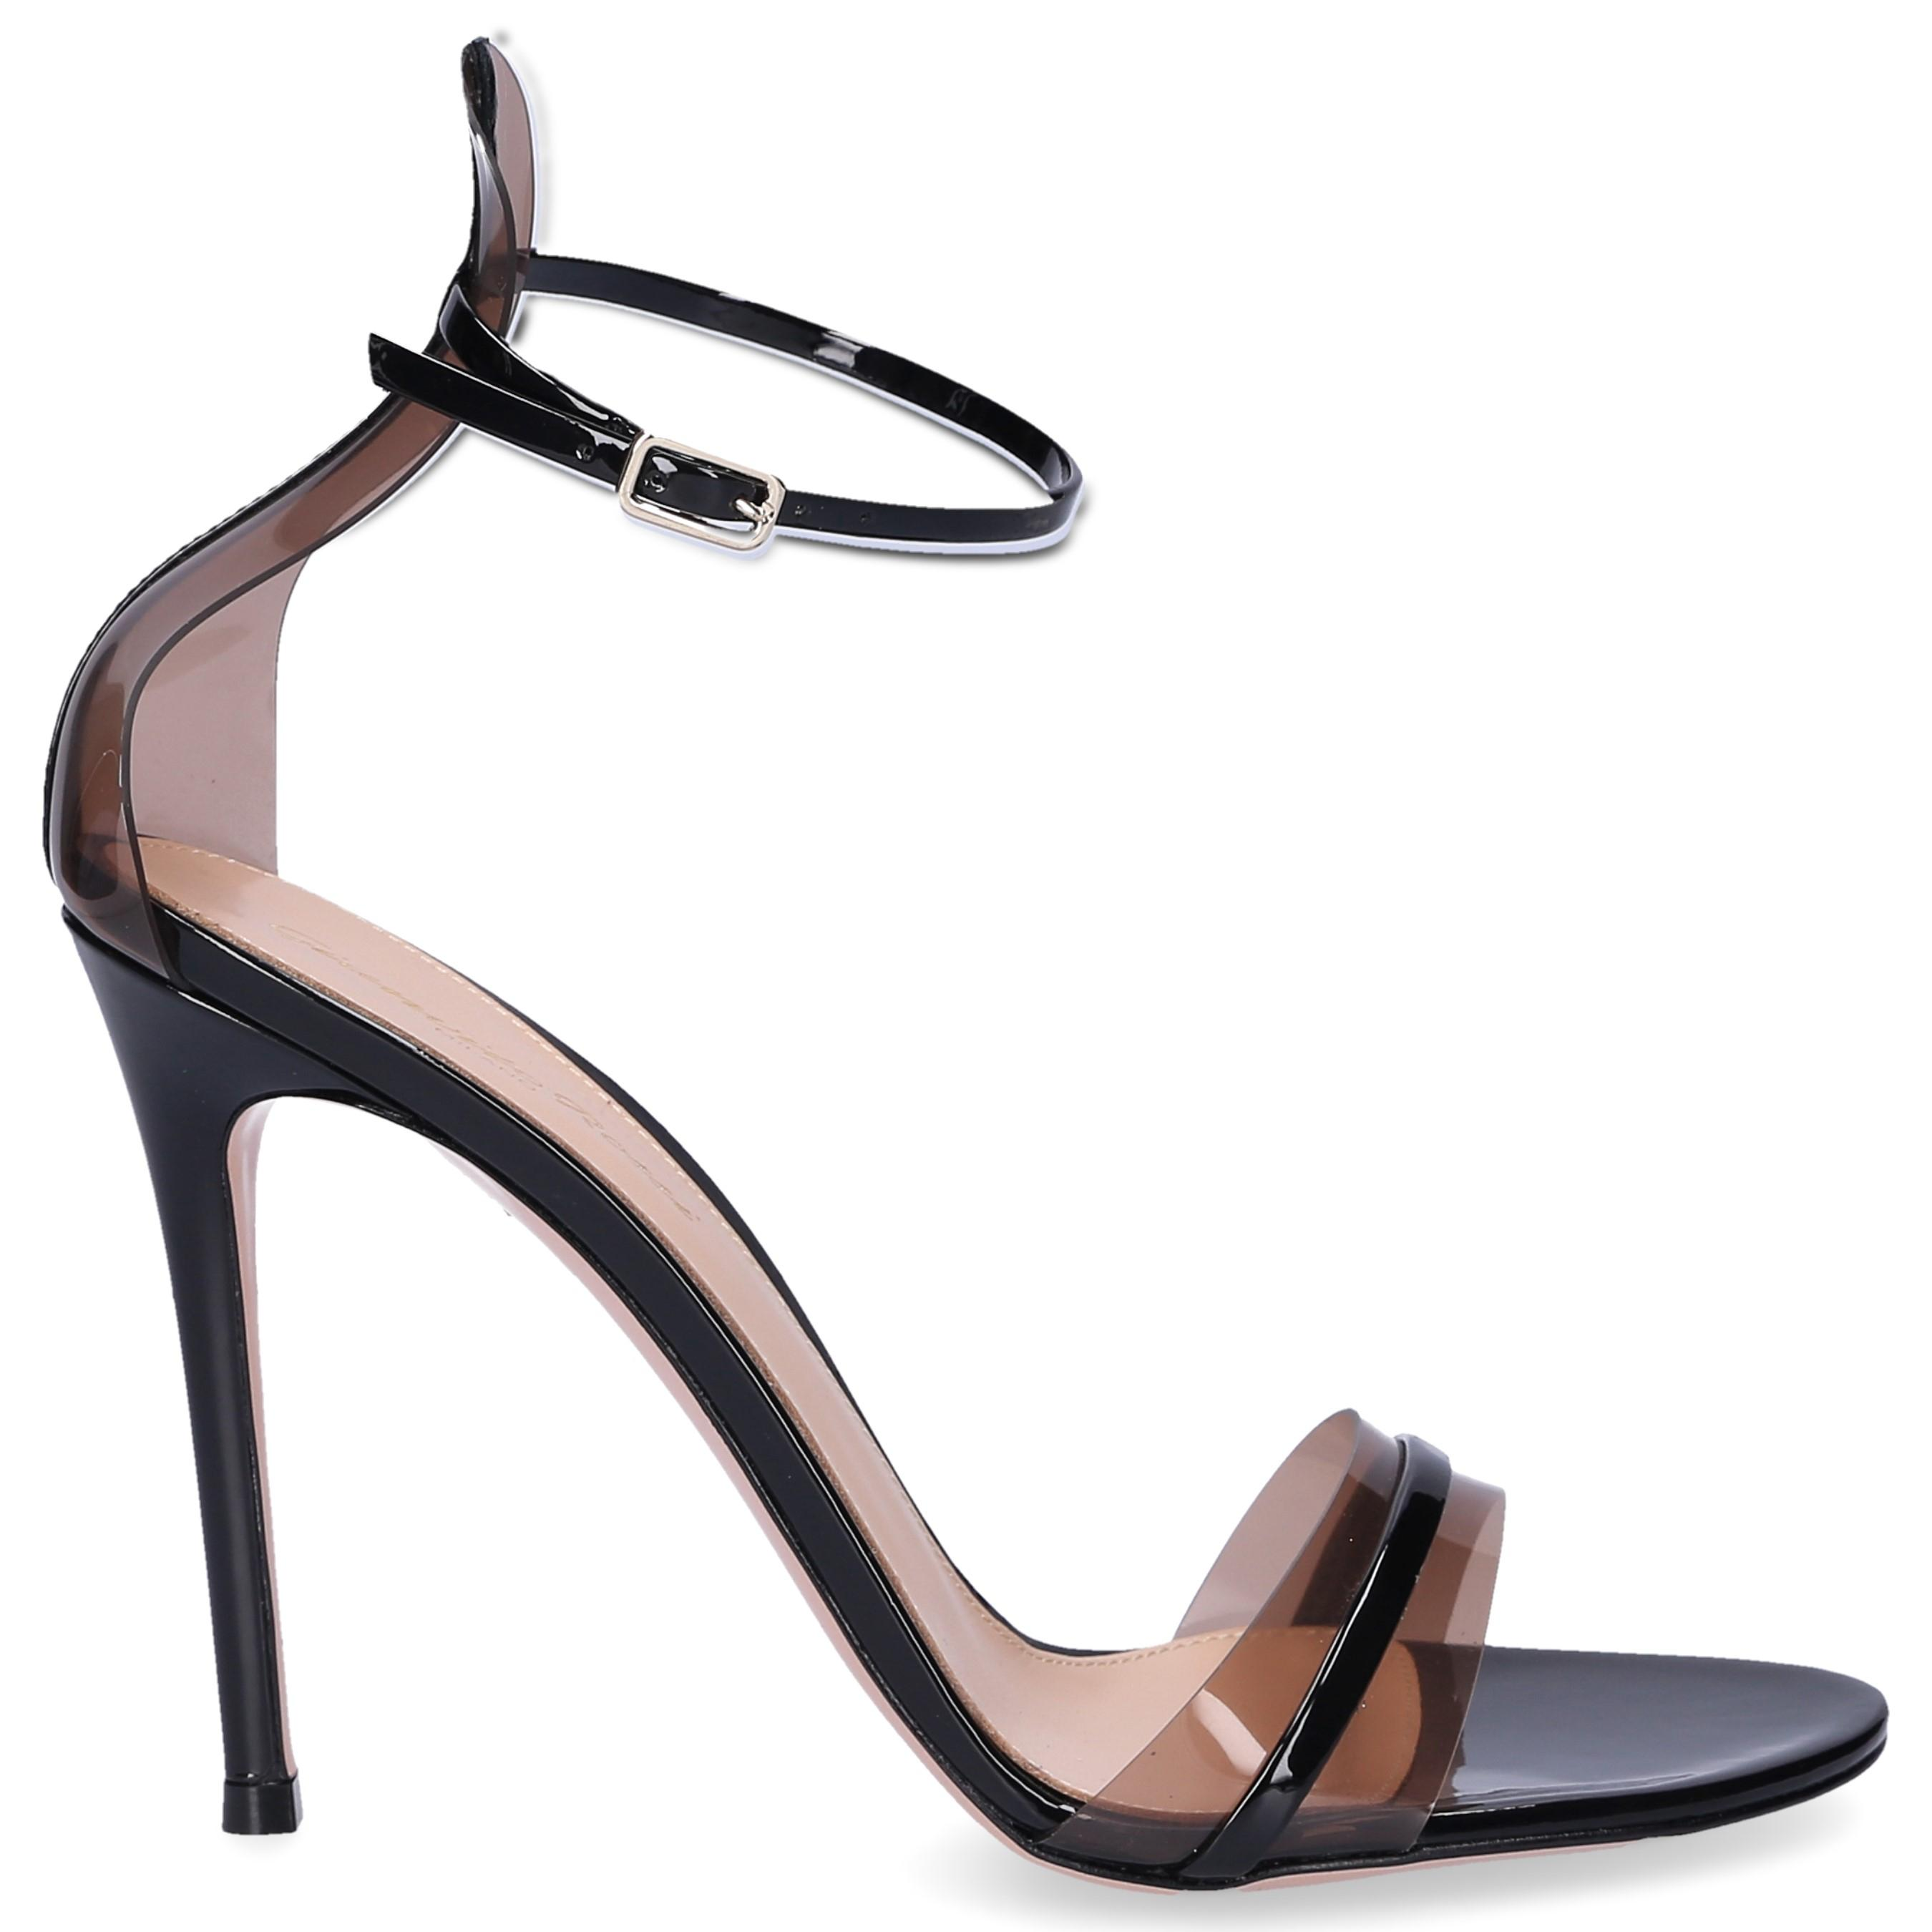 ff33369e09f Gianvito Rossi Sandals G String Patent Leather Pvc Black in Black - Lyst